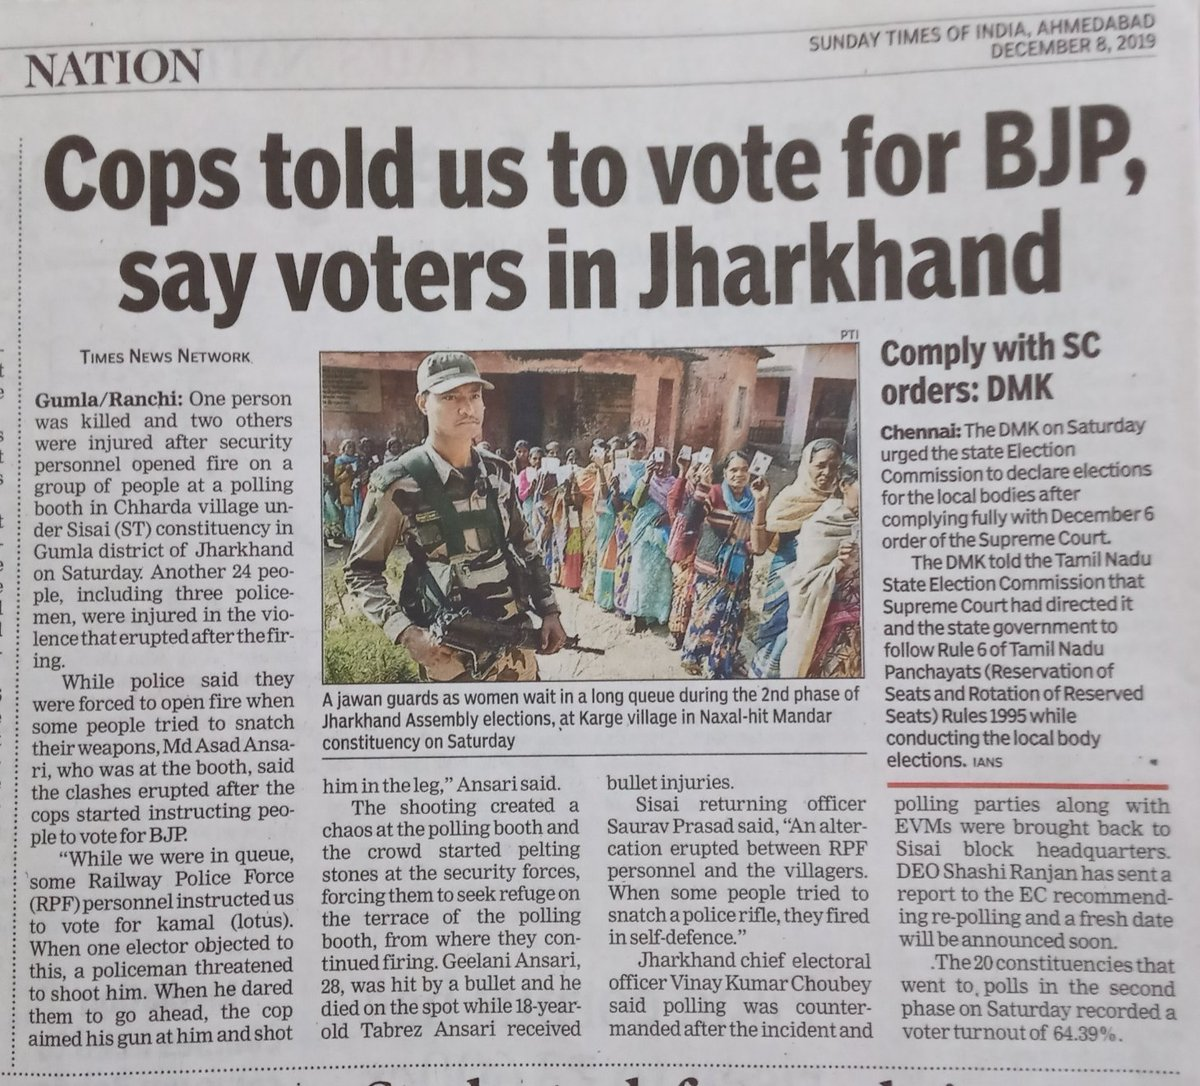 """""""While in queue, the RPF personnel instructed us to vote for Kamal (Lotus). One elector objected. The policeman threatened to shoot him, when he dared them to shoot, the cop shot him in the leg""""  Time for #BjpMuktBharat #ReclaimIndia from goons & criminals  #गठबंधन_संग_झारखंड"""